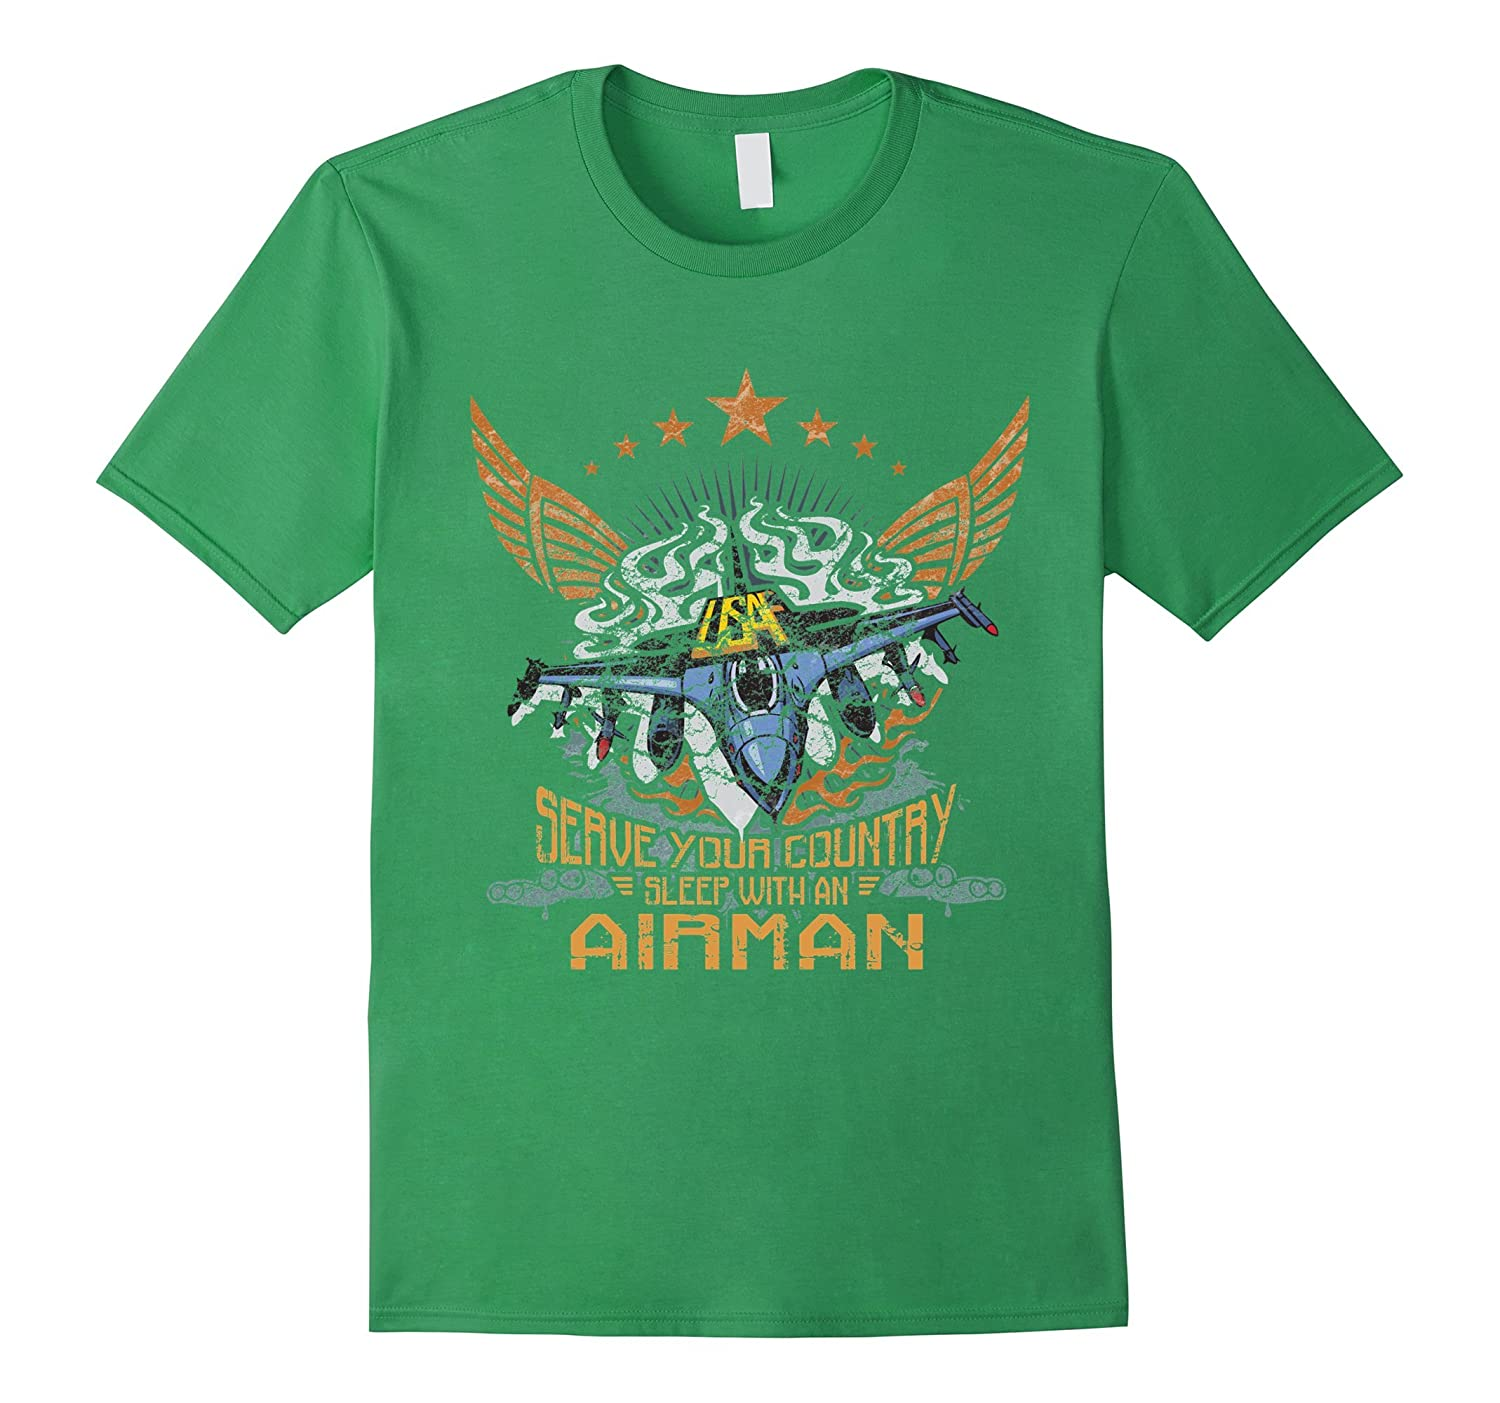 Airman T-shirt - Serve your country sleep with an airman-PL